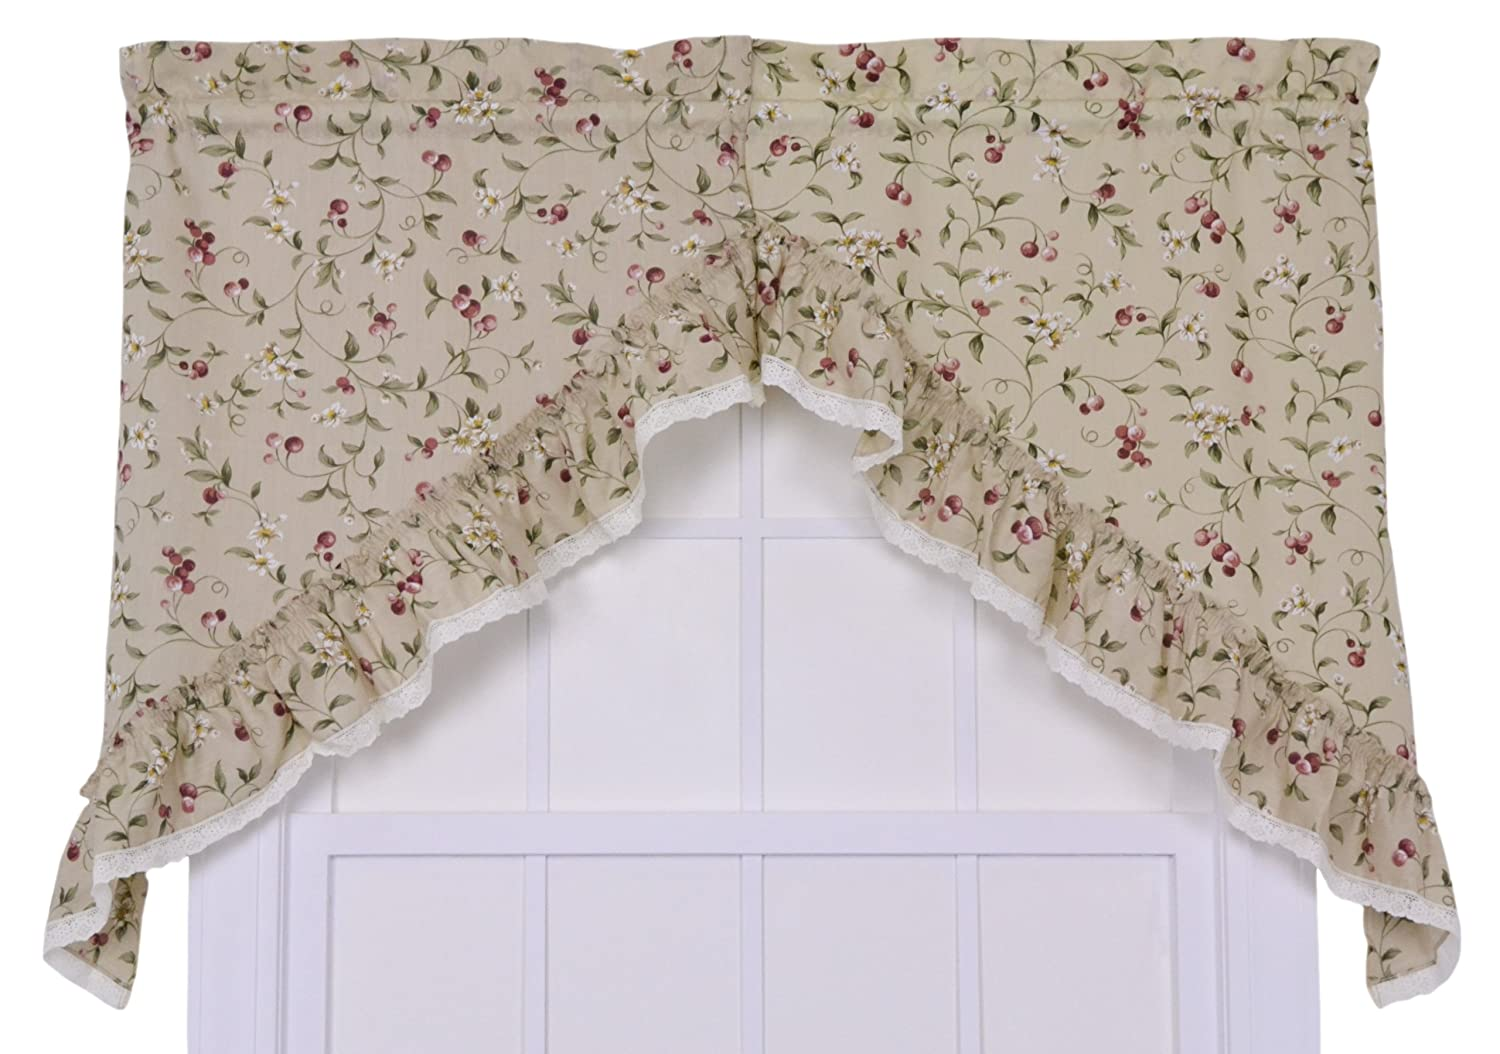 Ellis Curtain Kitchen Collection Cherries 58 by 24-Inch Ruffled Tailored Tier Curtains, Natural 730462535016